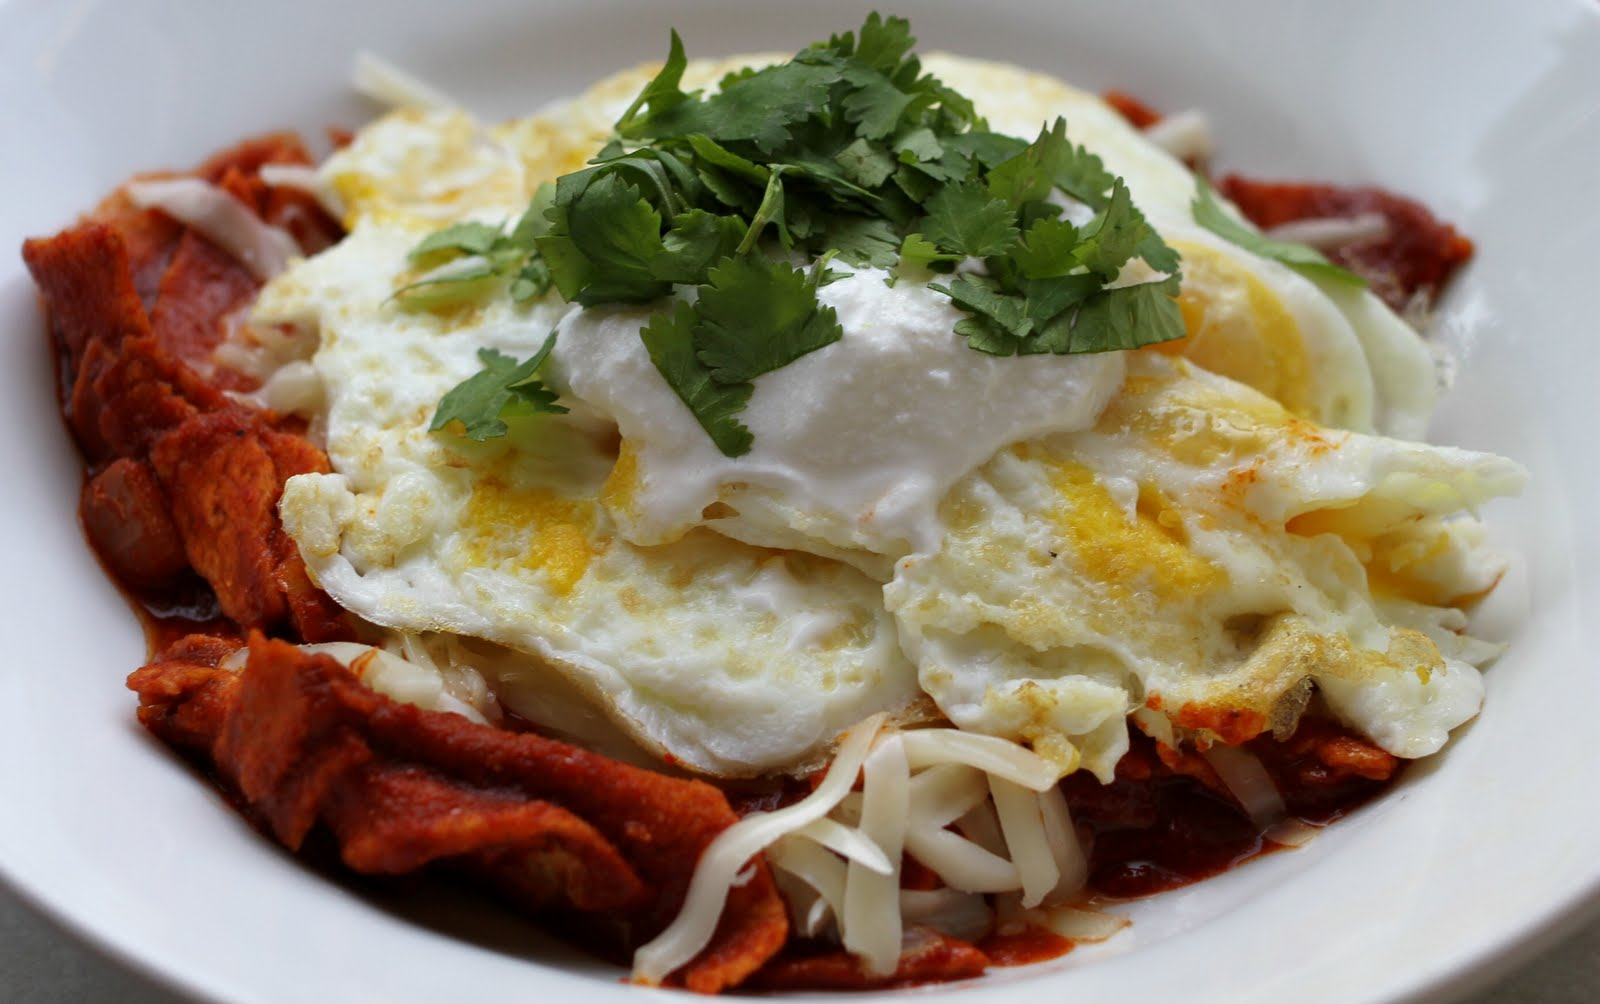 On My Menu: Chilaquiles